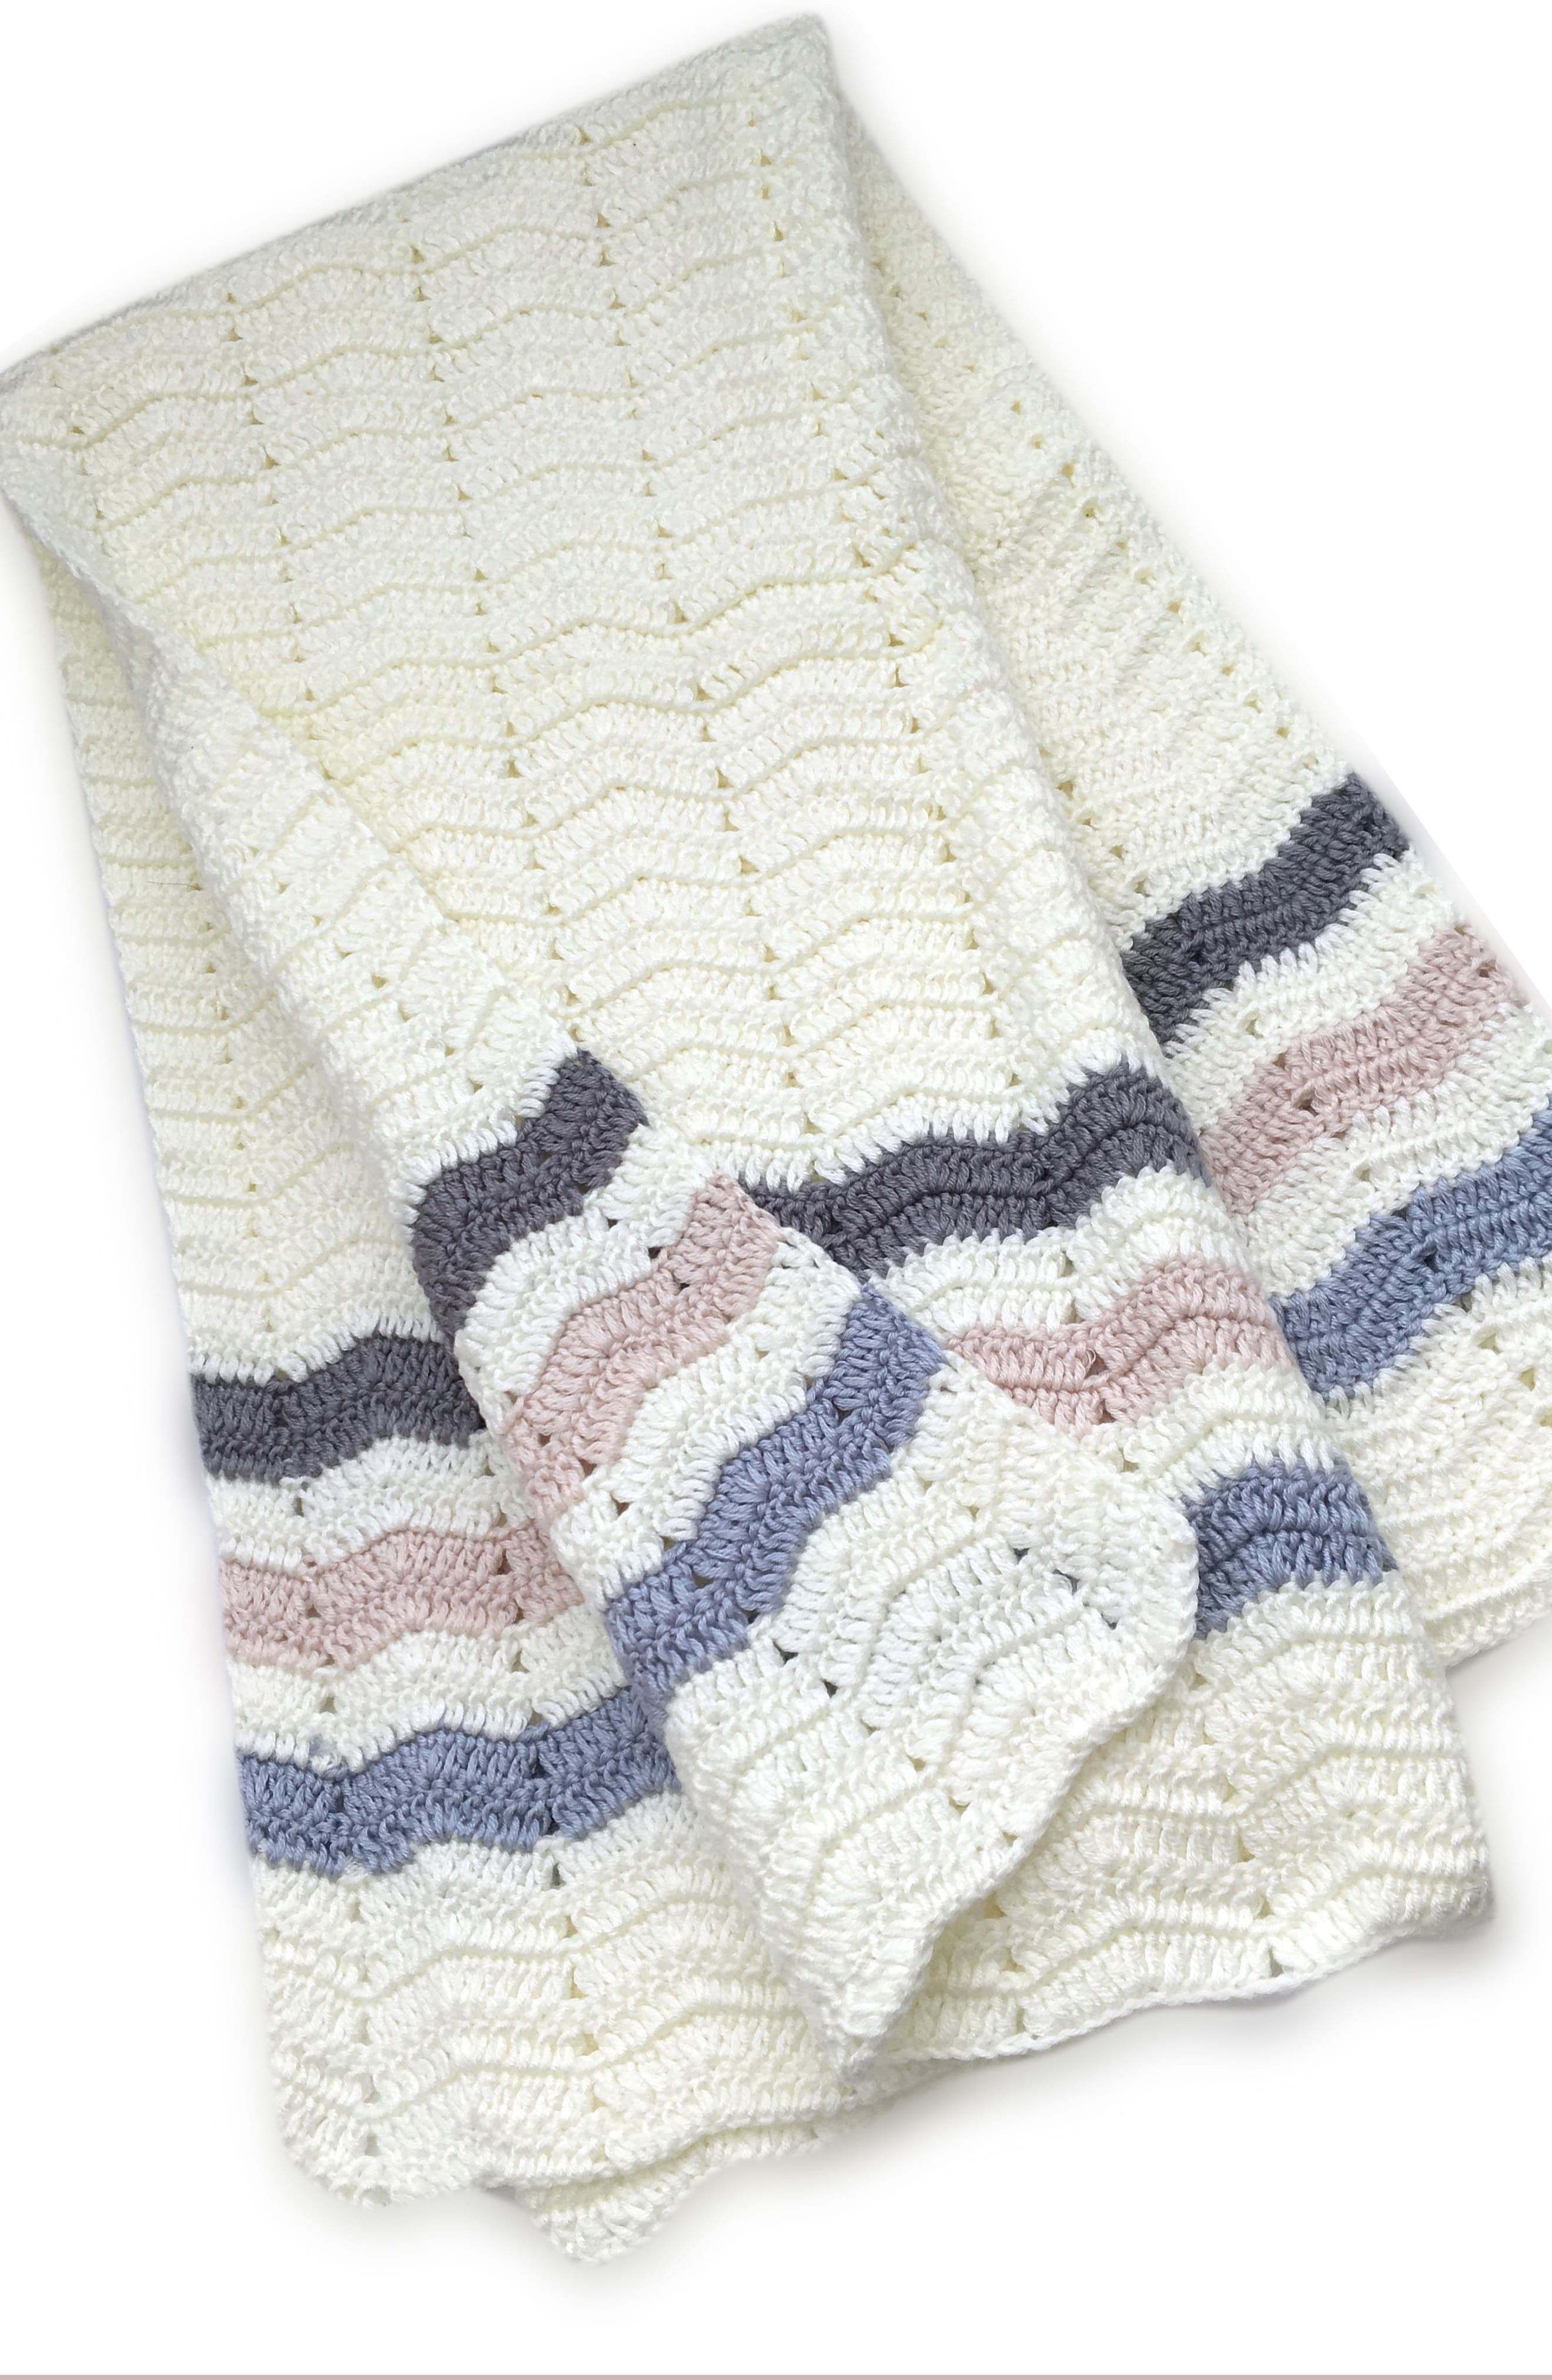 Main Image - O.B. Designs Ripple Crocheted Blanket (Baby)